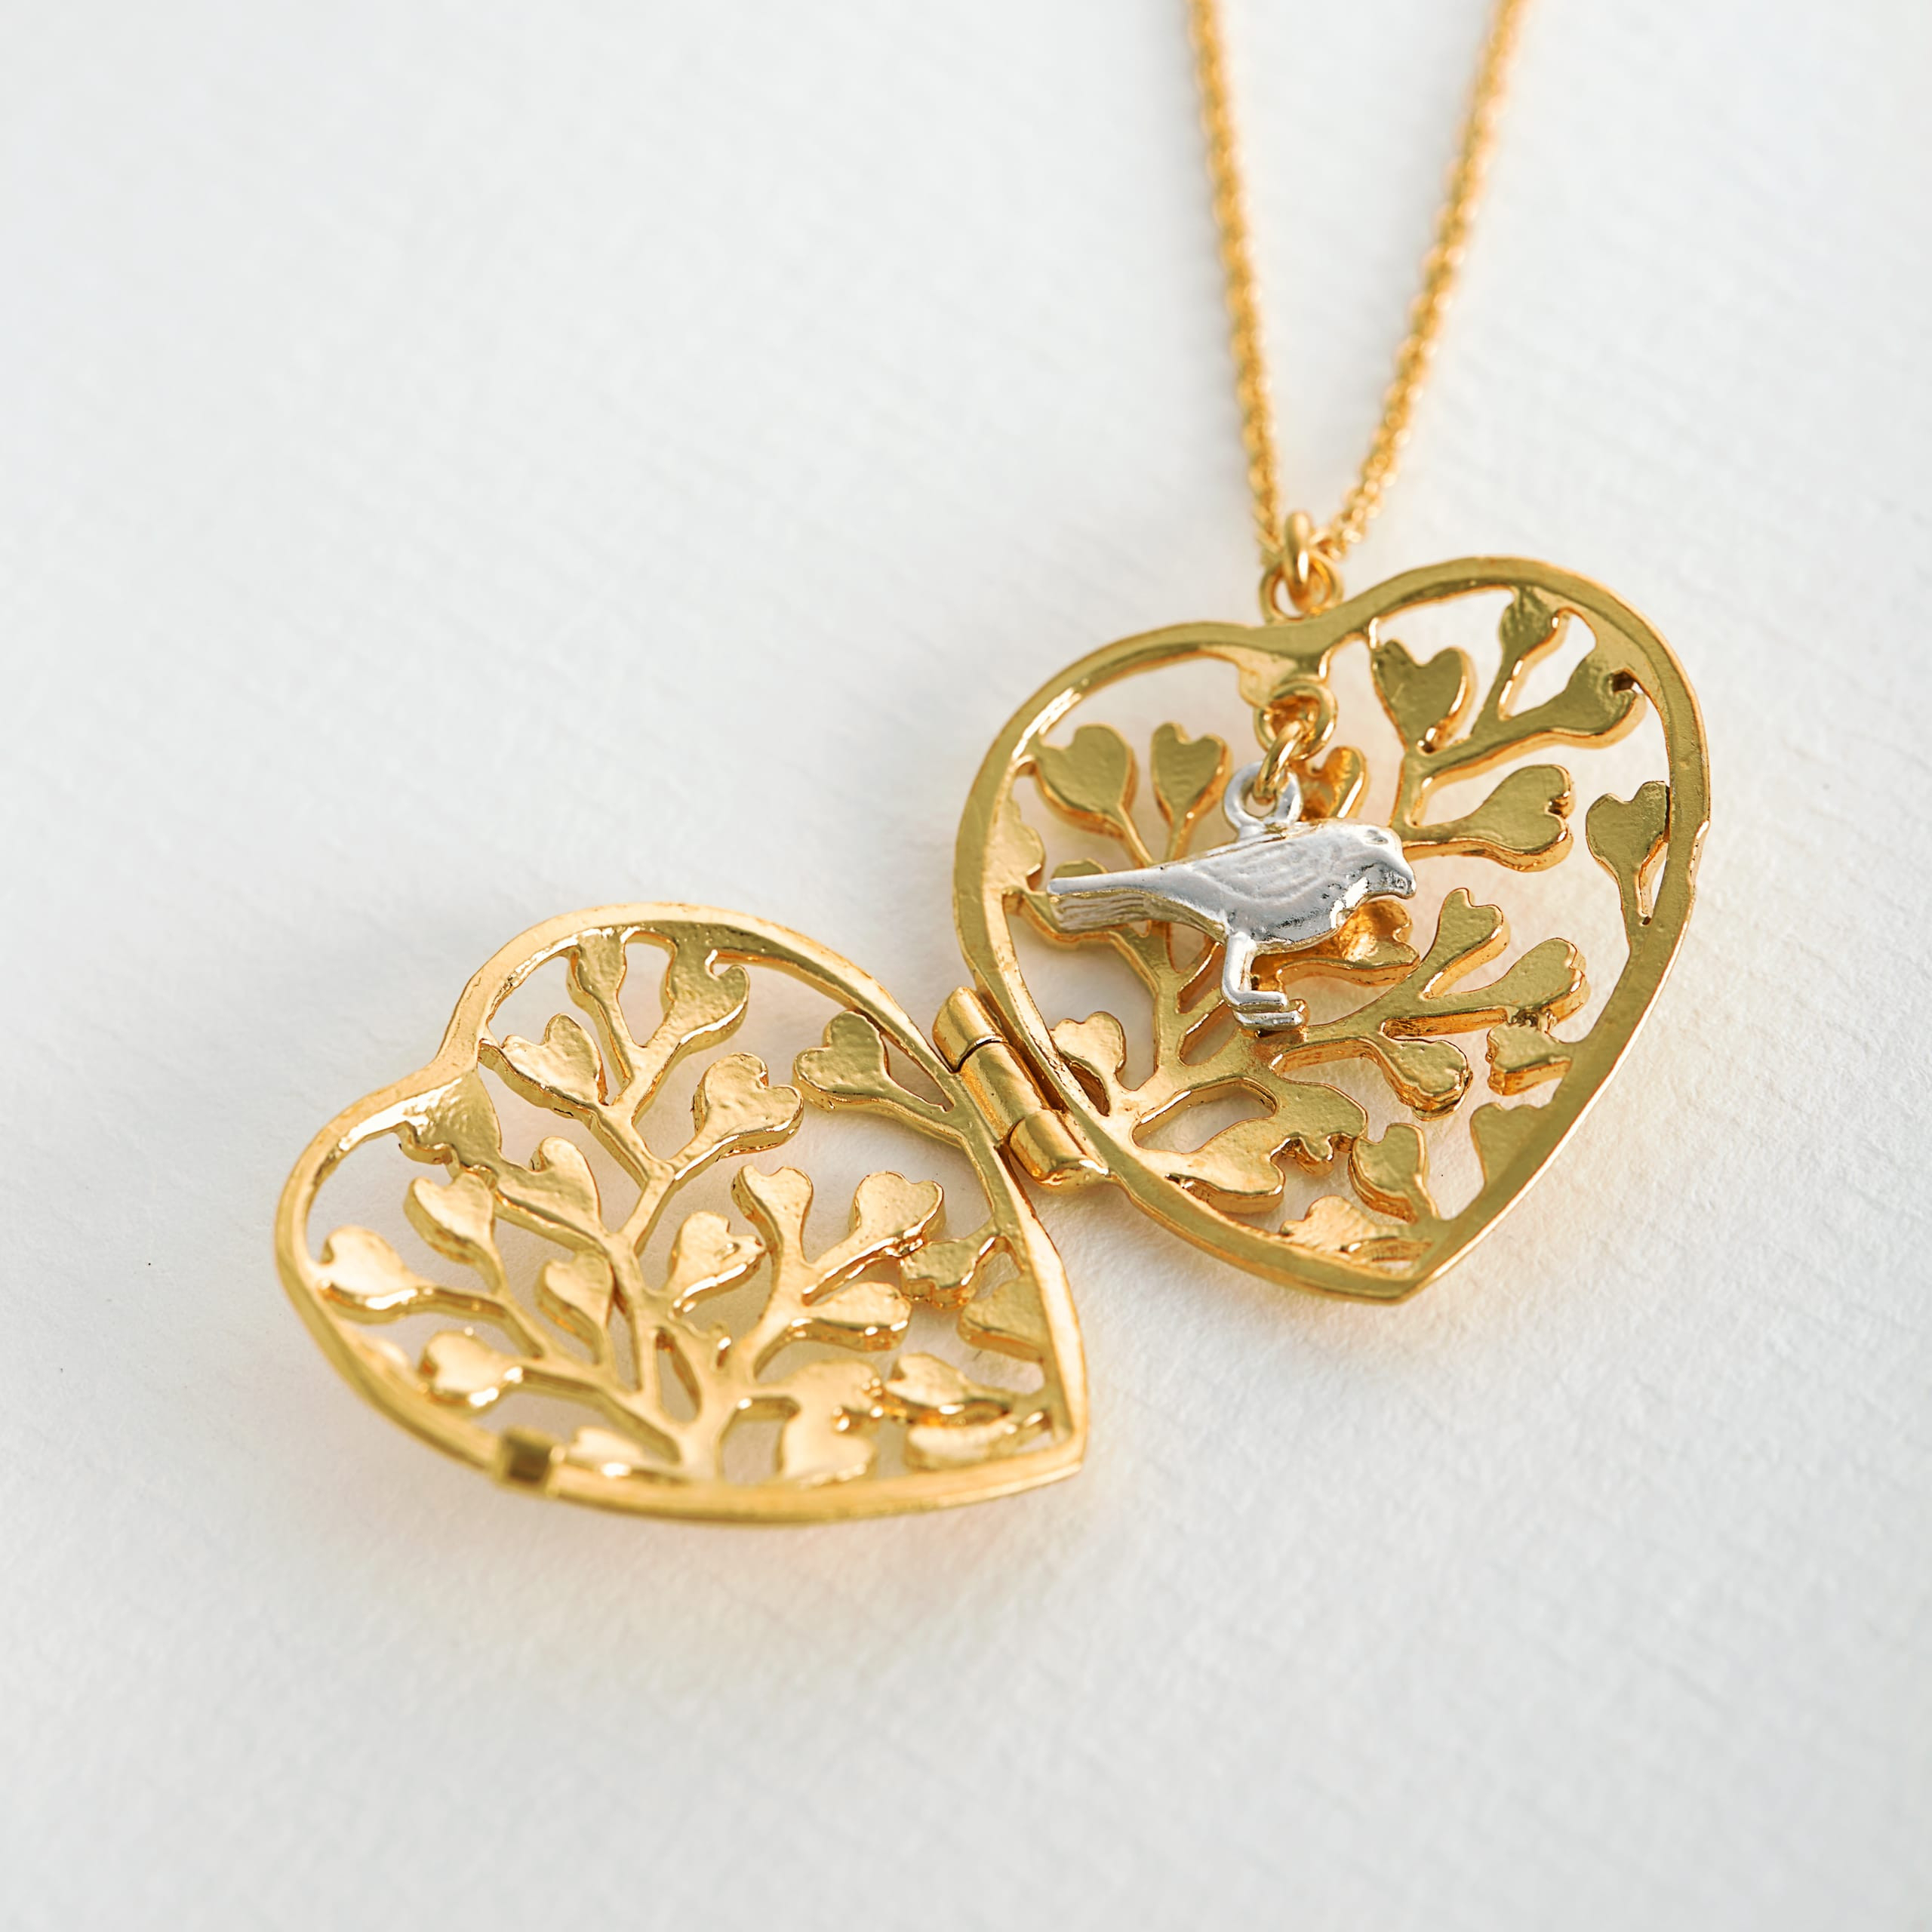 Lace Fern Heart Locket In Most Up To Date Heart Locket Plate Necklaces (View 11 of 25)